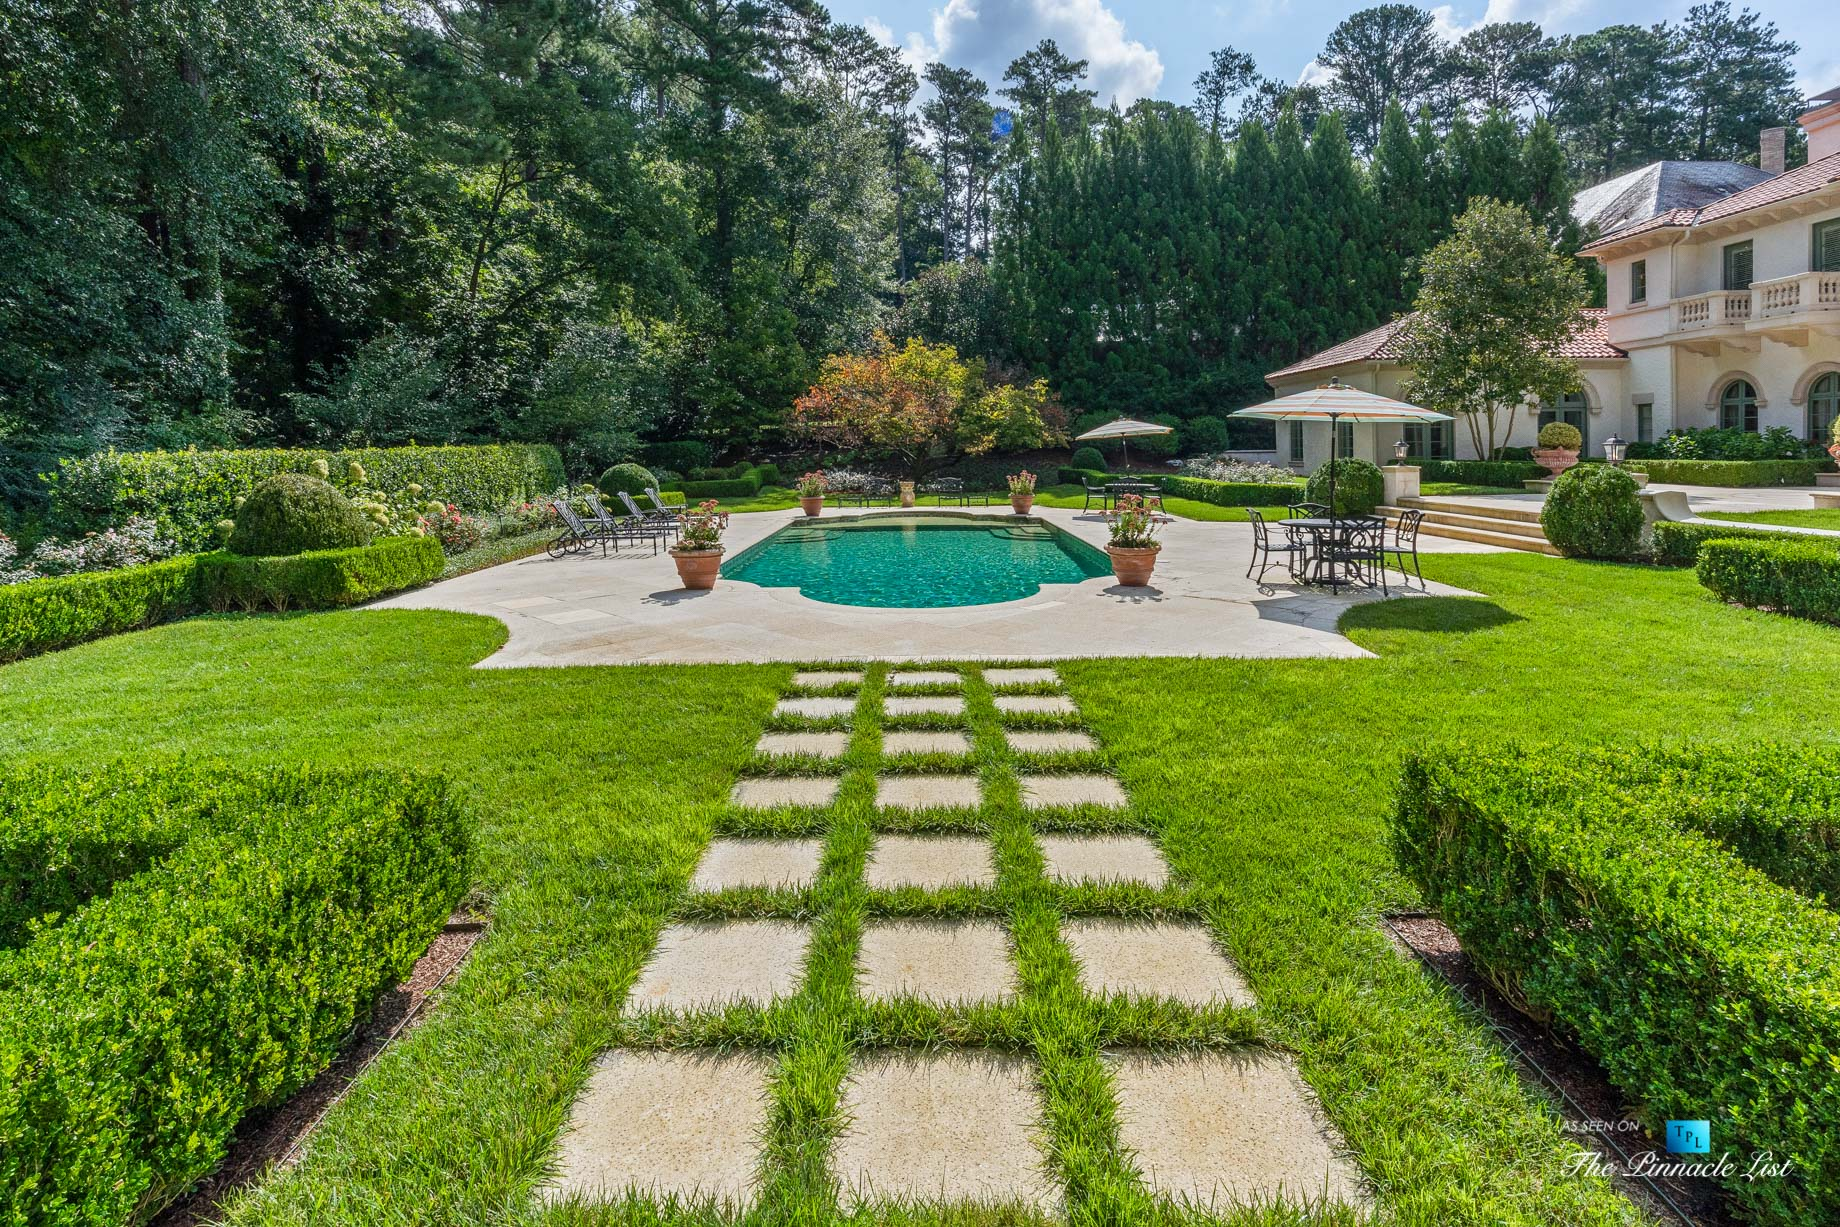 439 Blackland Rd NW, Atlanta, GA, USA – Luxurious Property Pool – Luxury Real Estate – Tuxedo Park Mediterranean Mansion Home